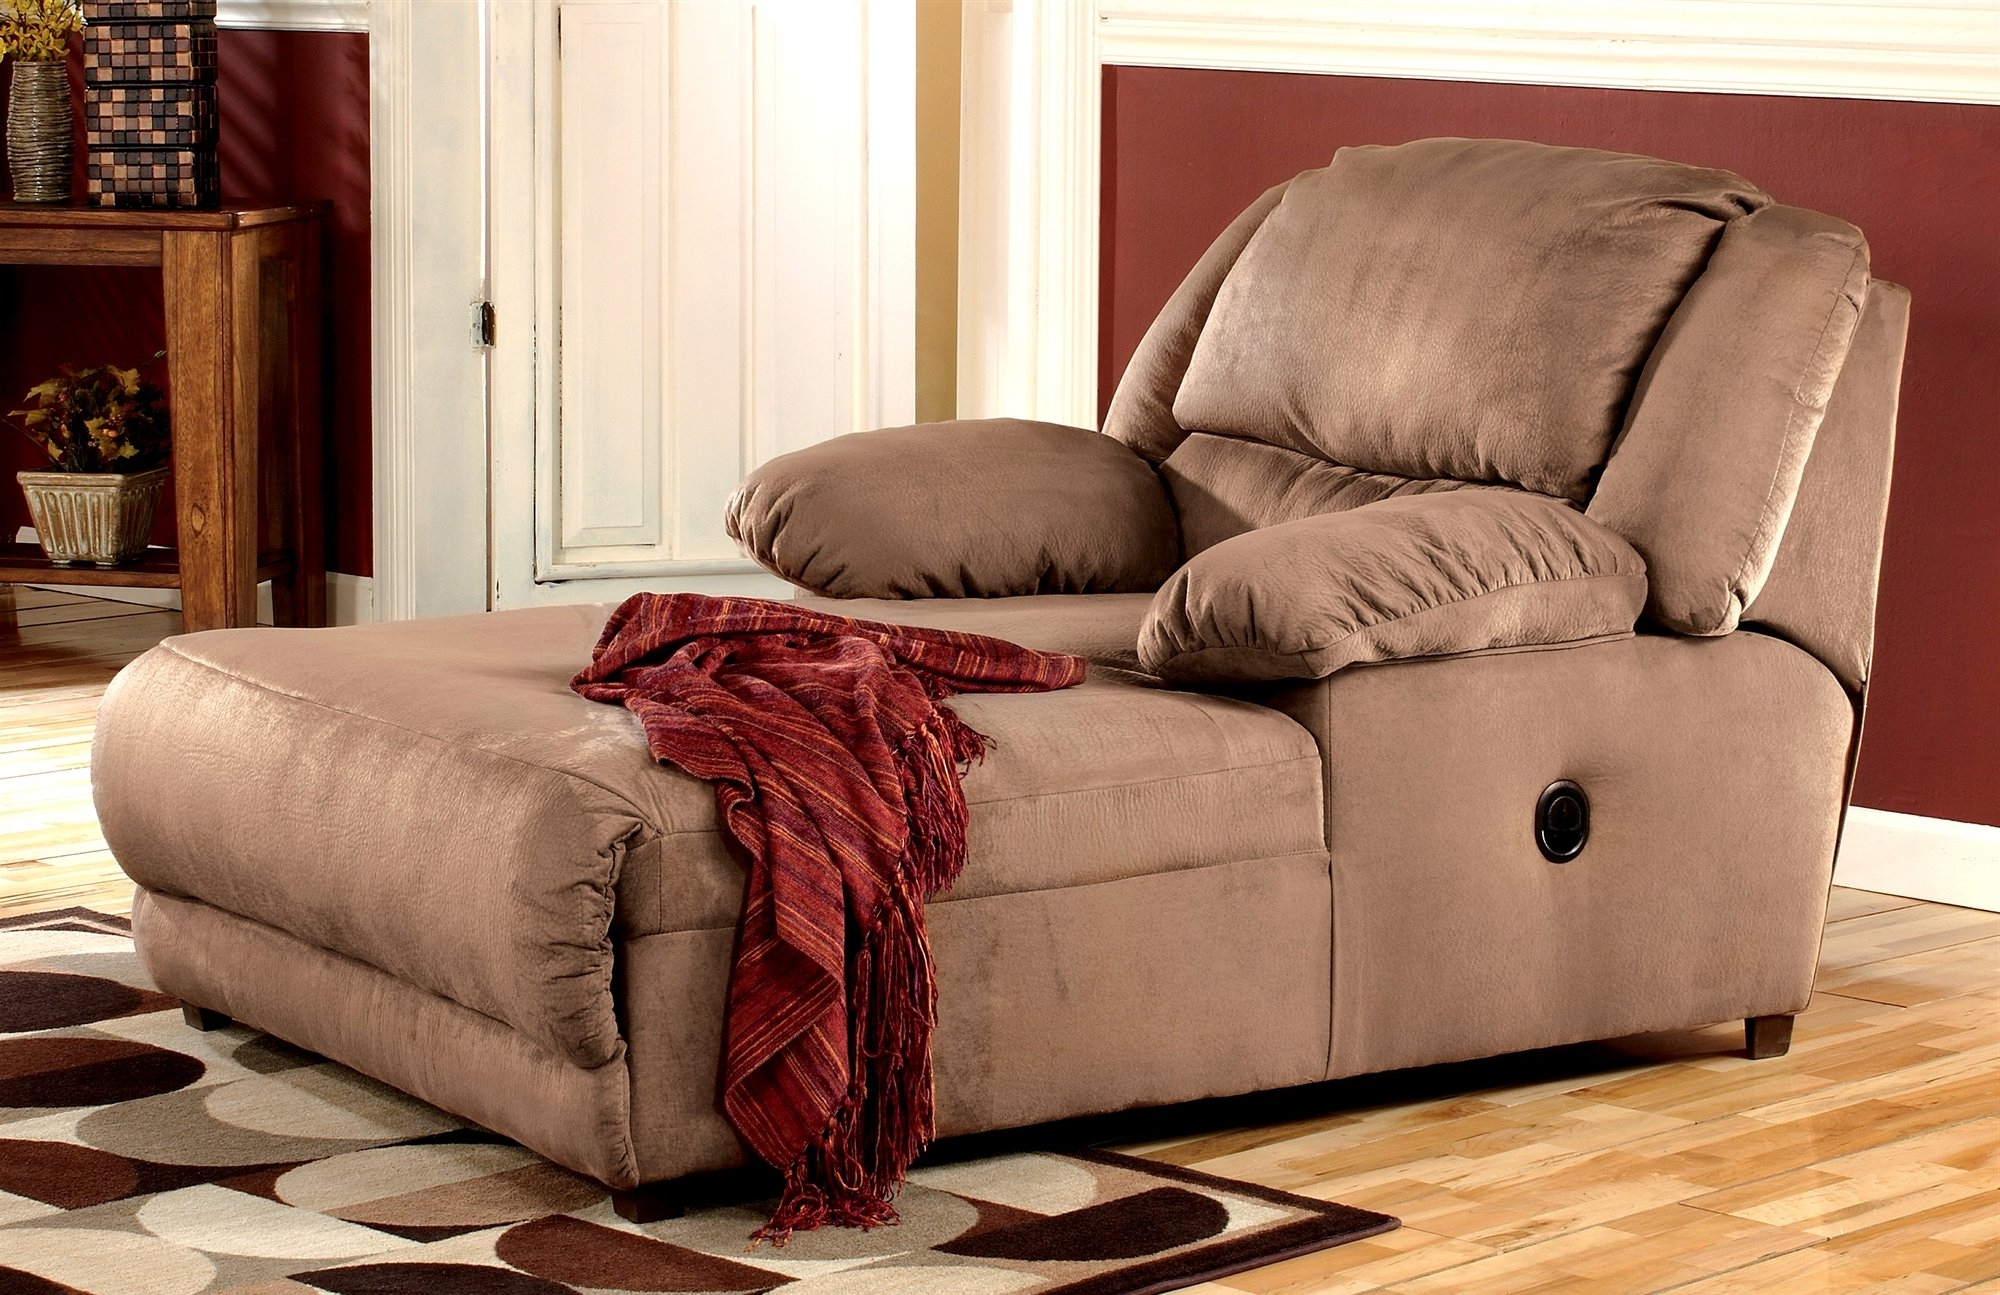 Cheap Indoor Chaise Lounges Throughout Most Recent Indoor Chaise Lounge Chair (View 7 of 15)